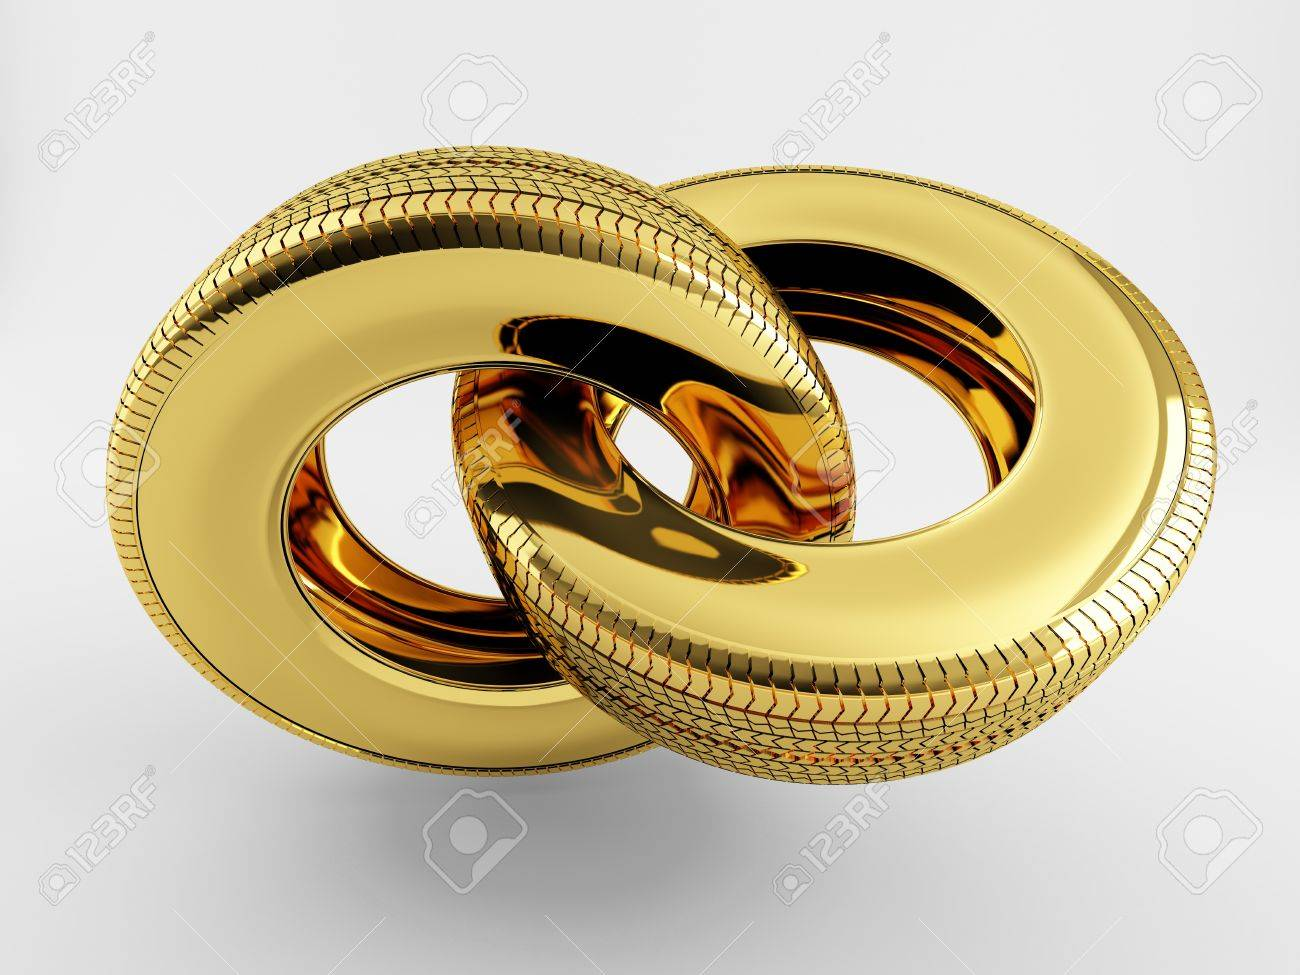 Two tires of gold in the form of a chain link Stock Photo - 14558137